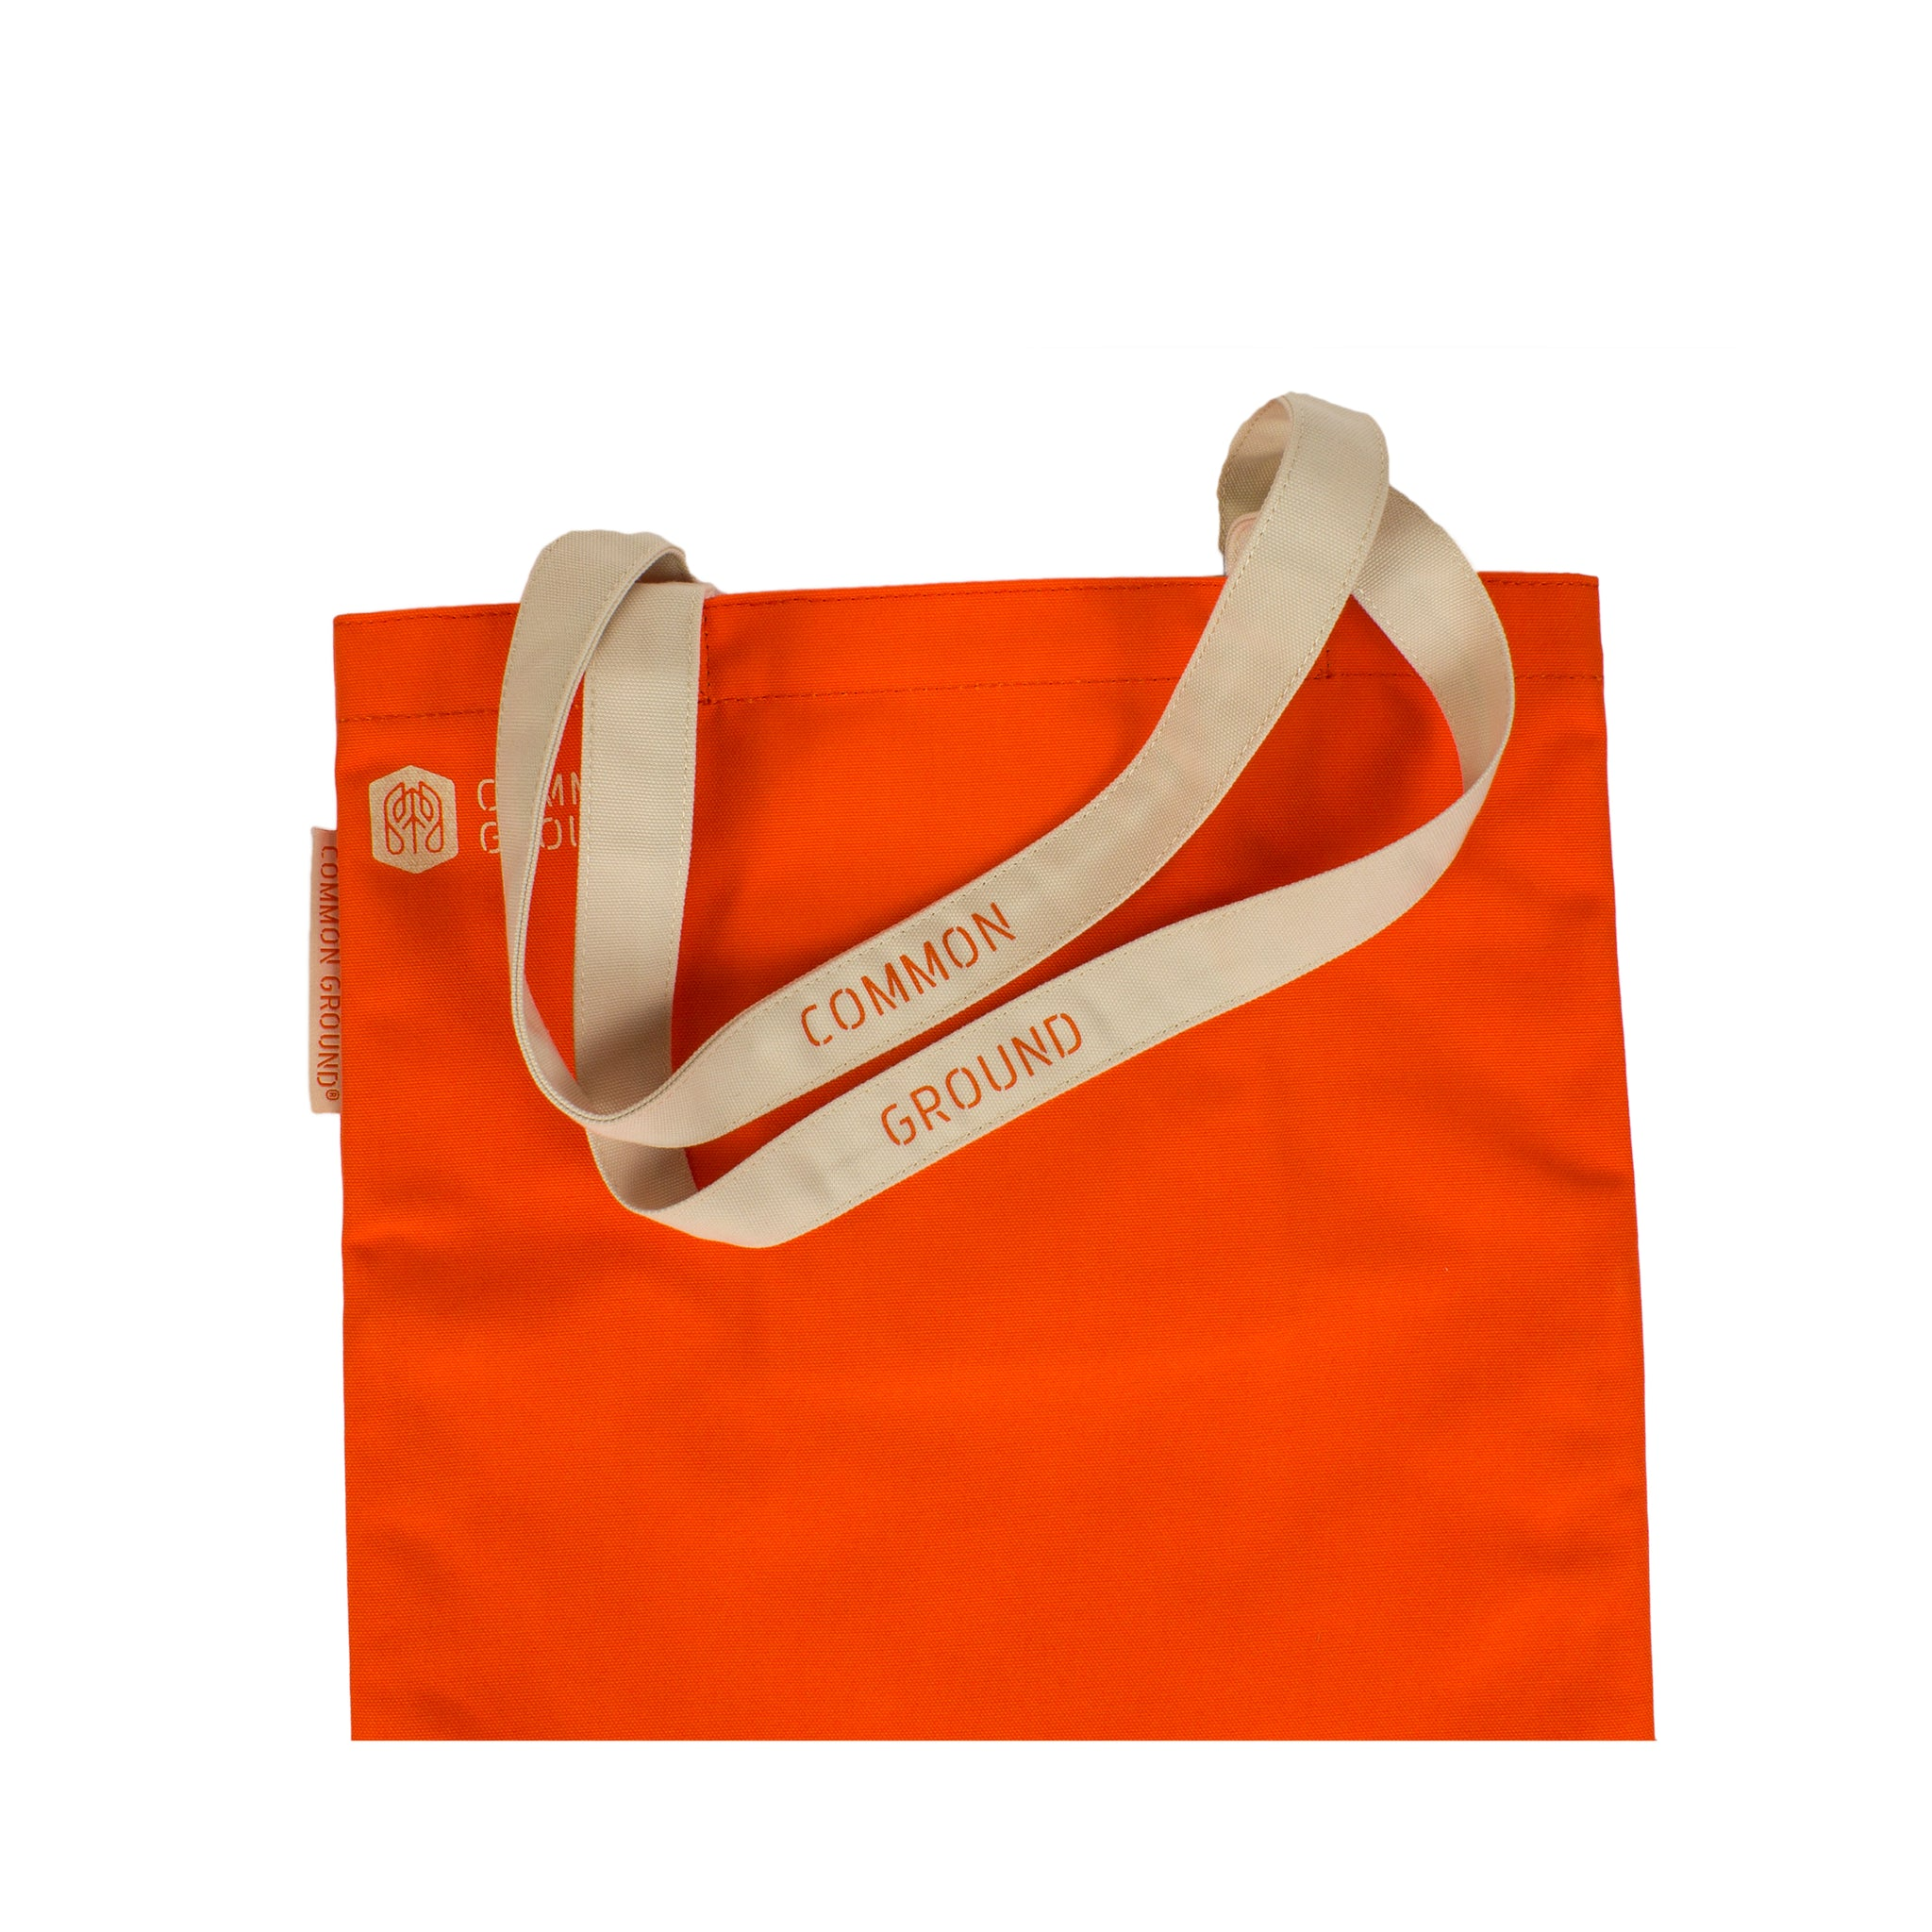 Vibrant_Orange - Common Ground Reading Tote Strap View